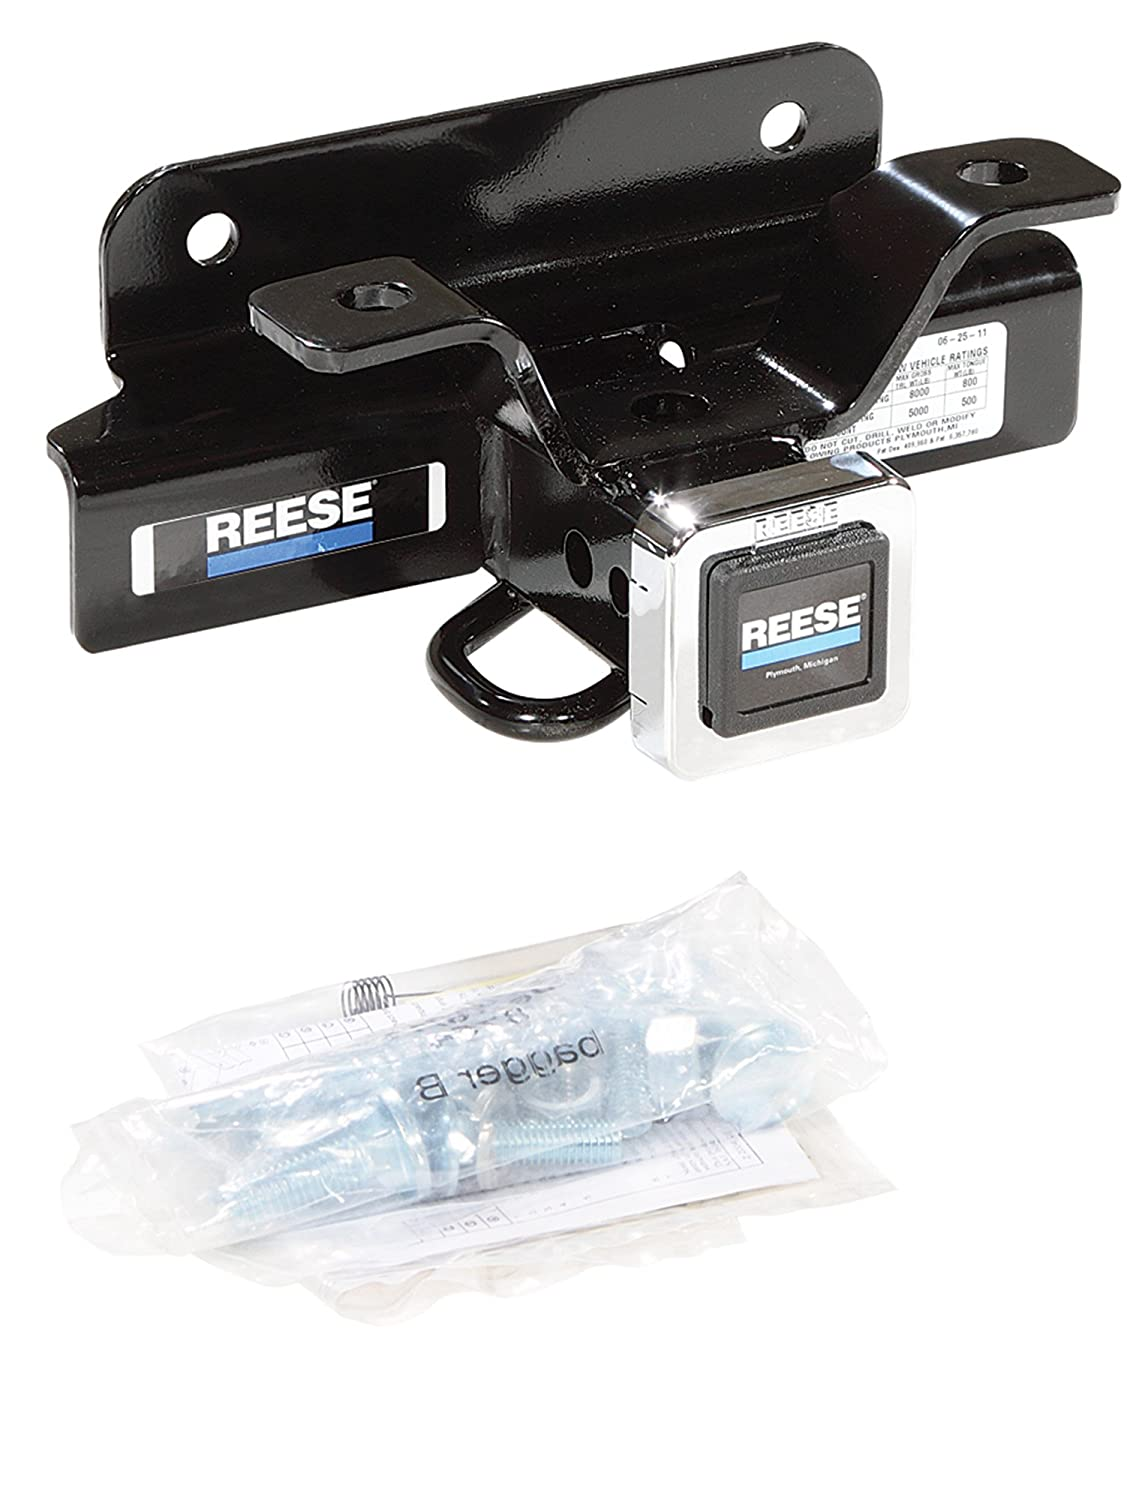 Reese Towpower 44738 Class III Custom-Fit Hitch with 2 Square Receiver opening includes Hitch Plug Cover